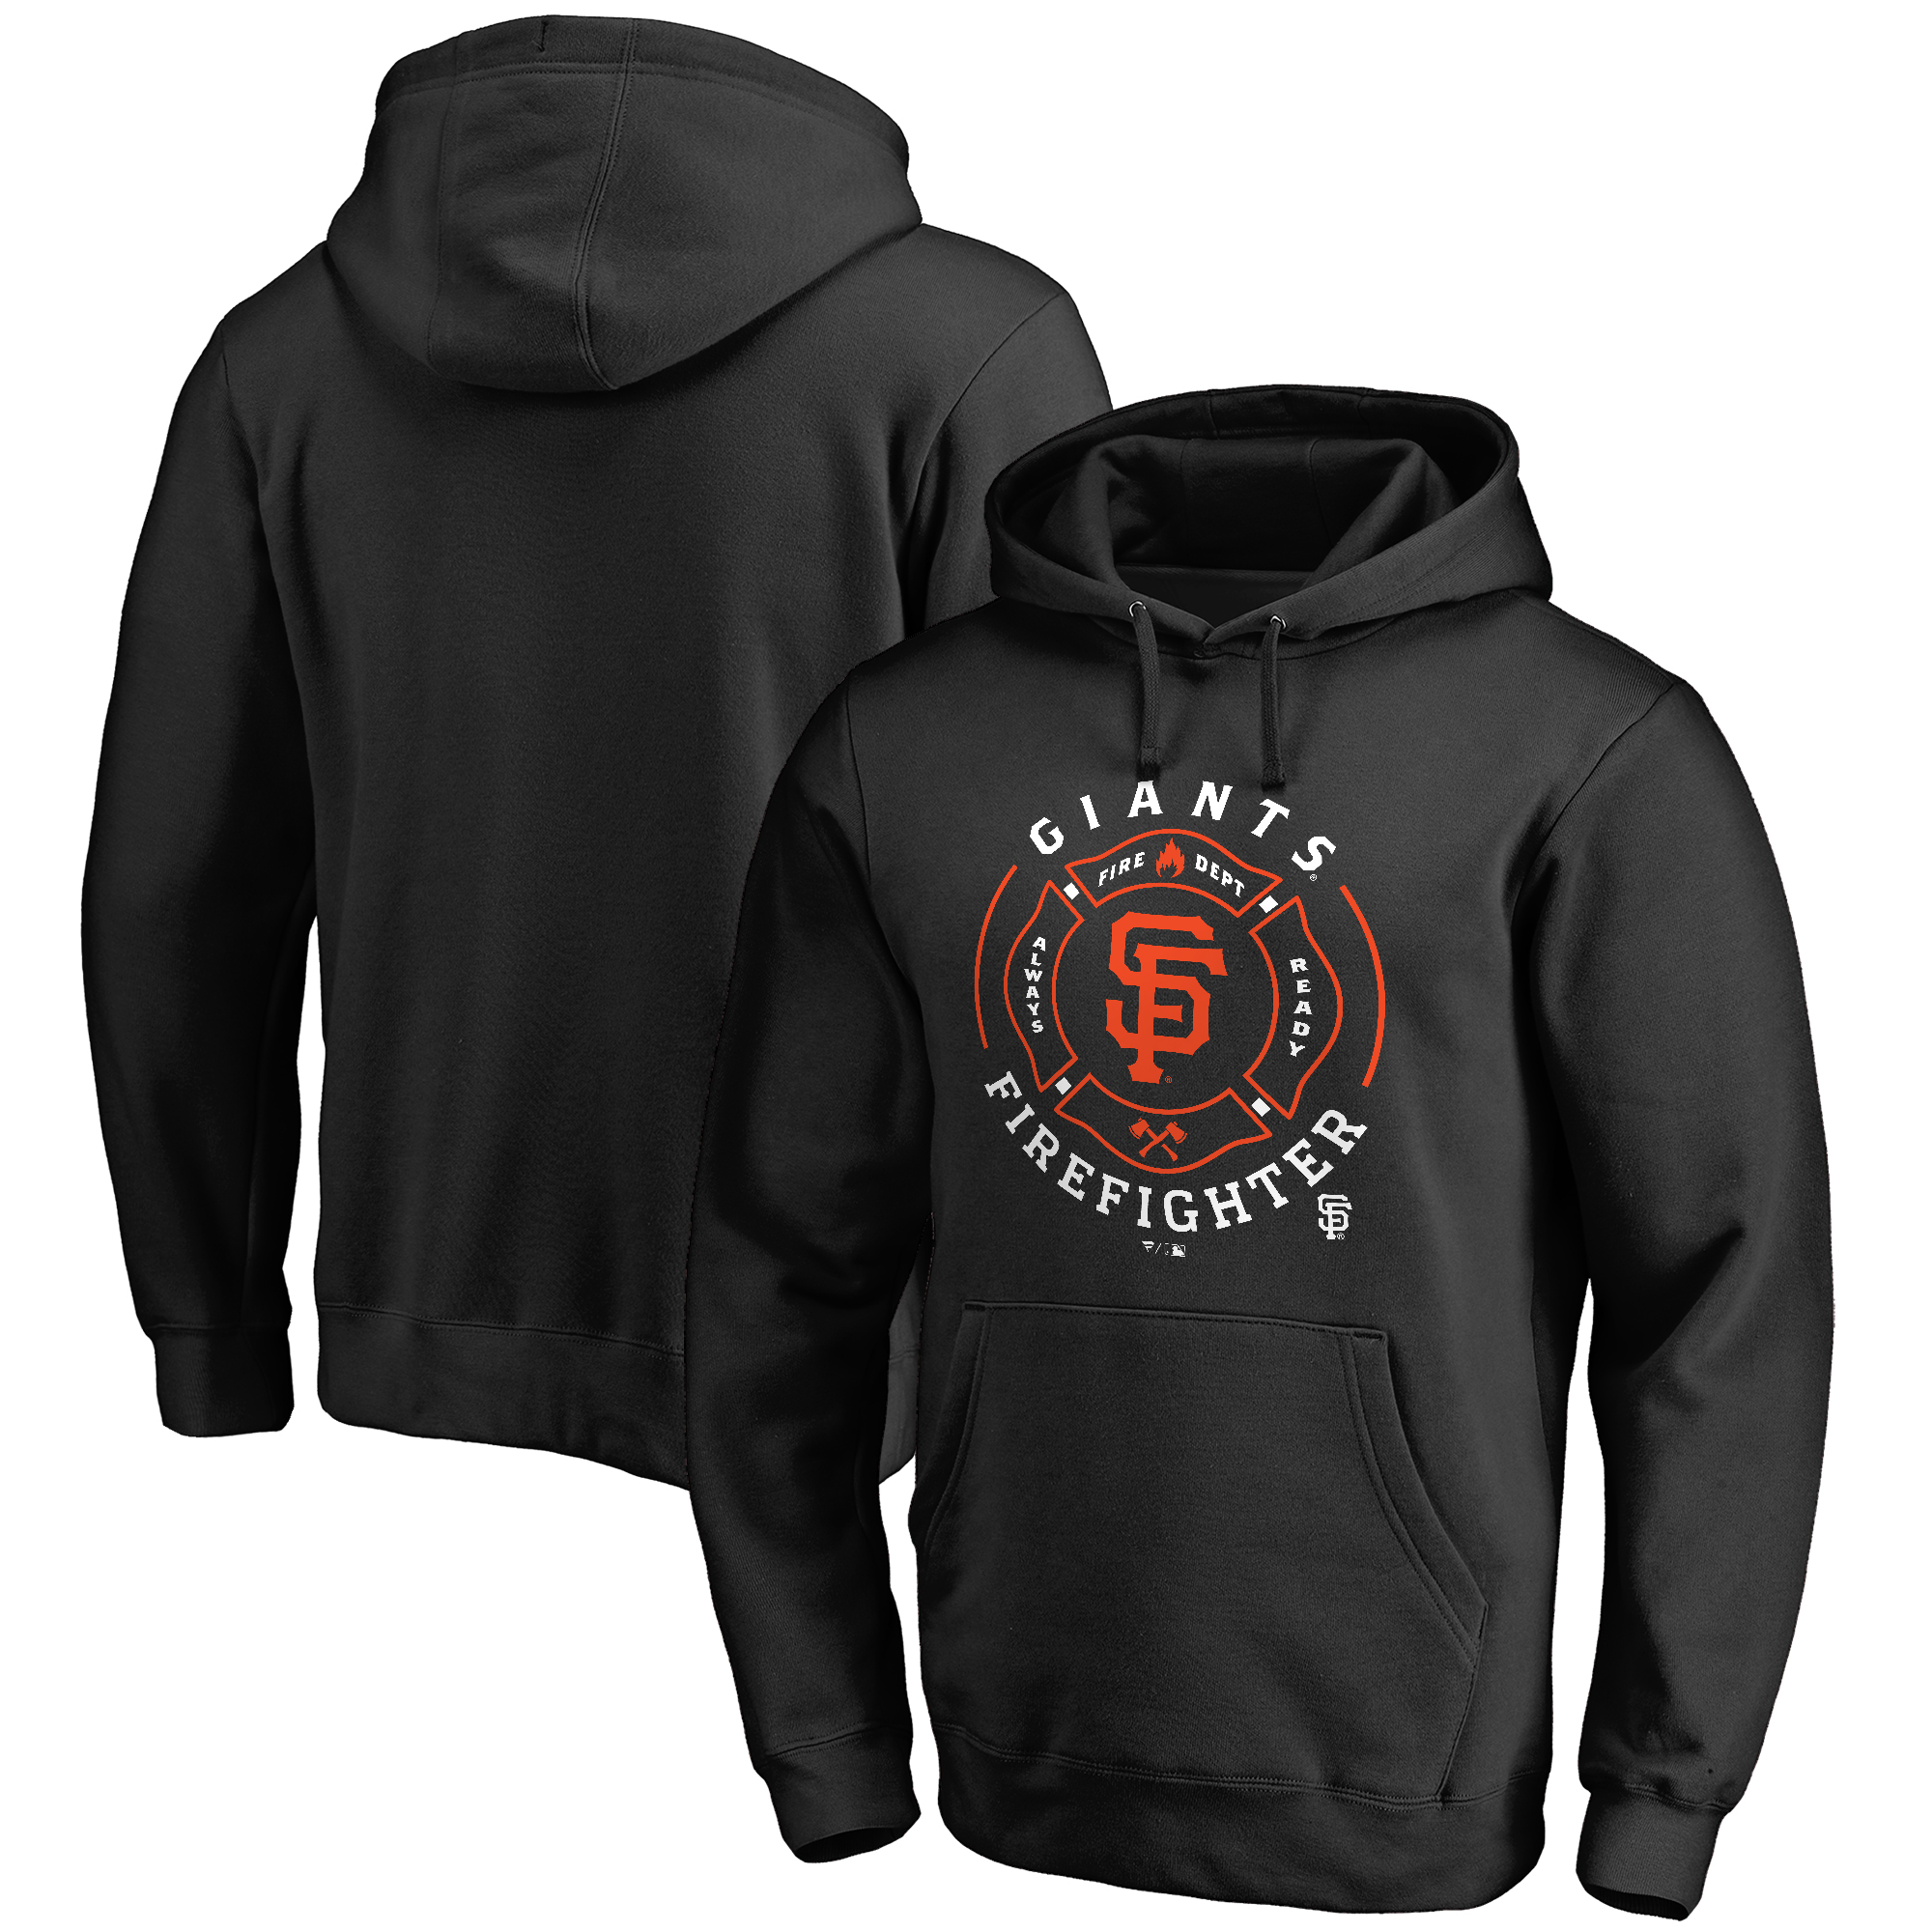 San Francisco Giants Firefighter Pullover Hoodie - Black